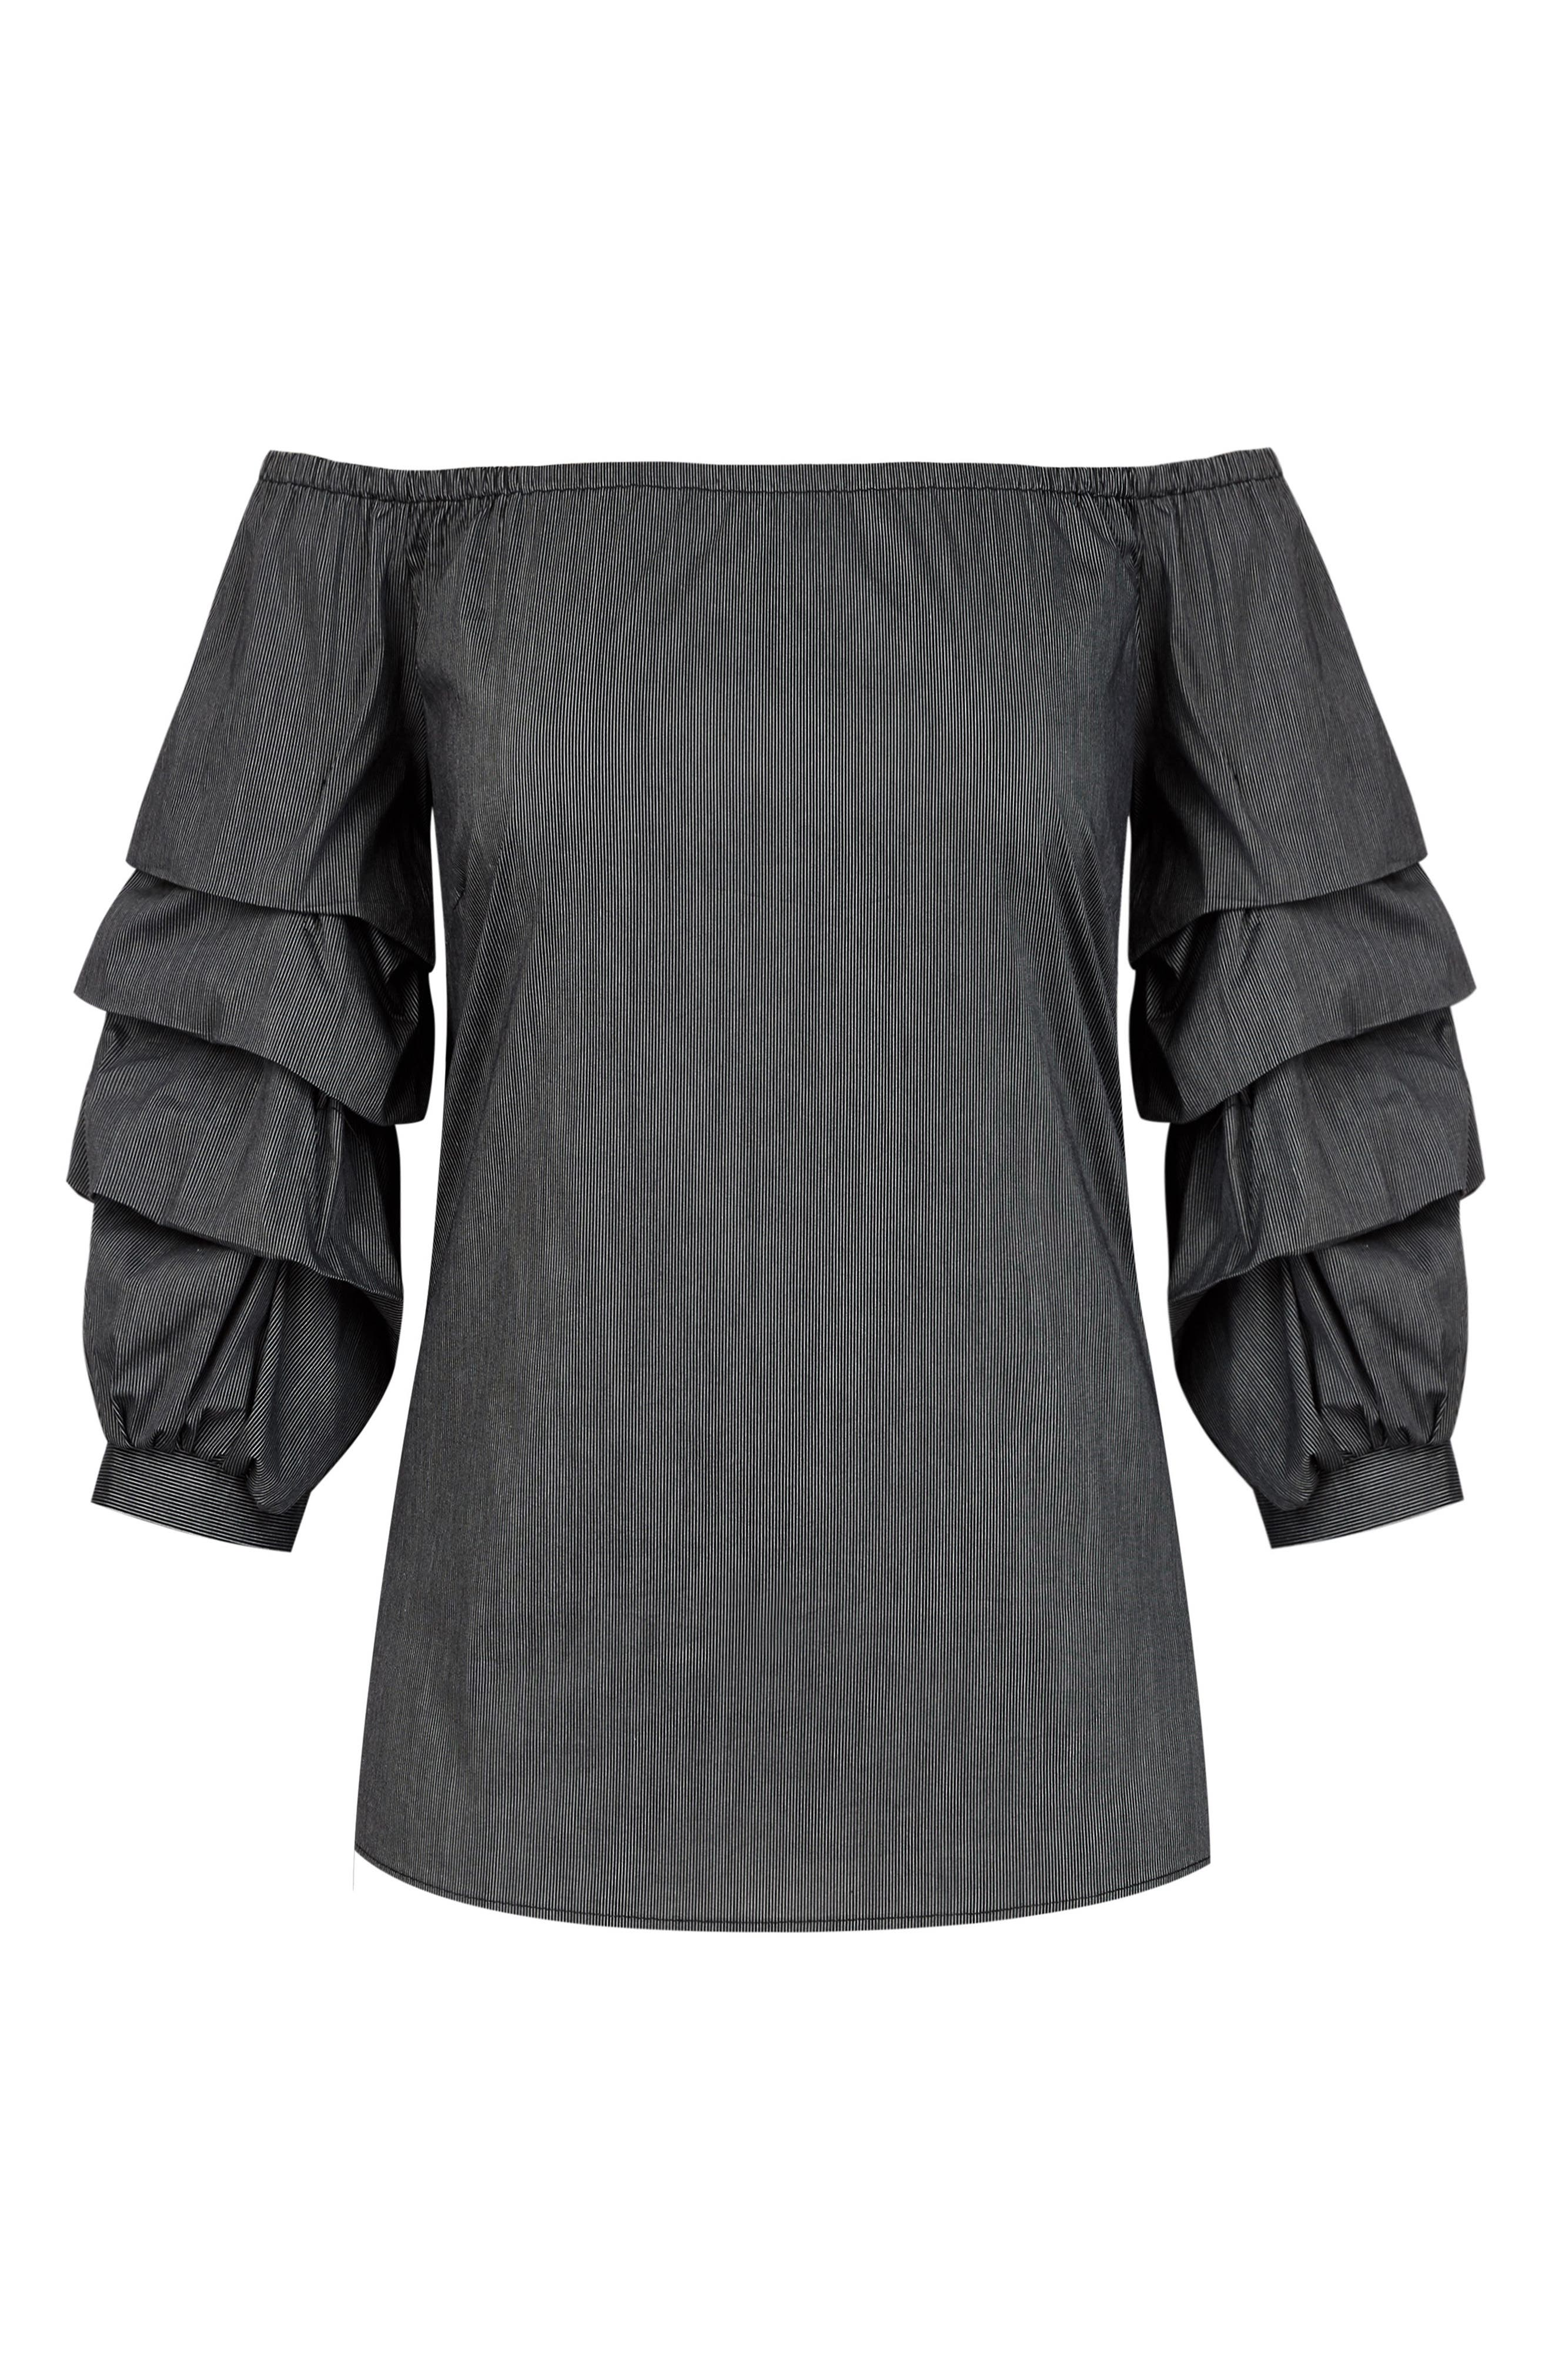 Fancy Sleeve Off the Shoulder Cotton Blend Top,                             Alternate thumbnail 4, color,                             004